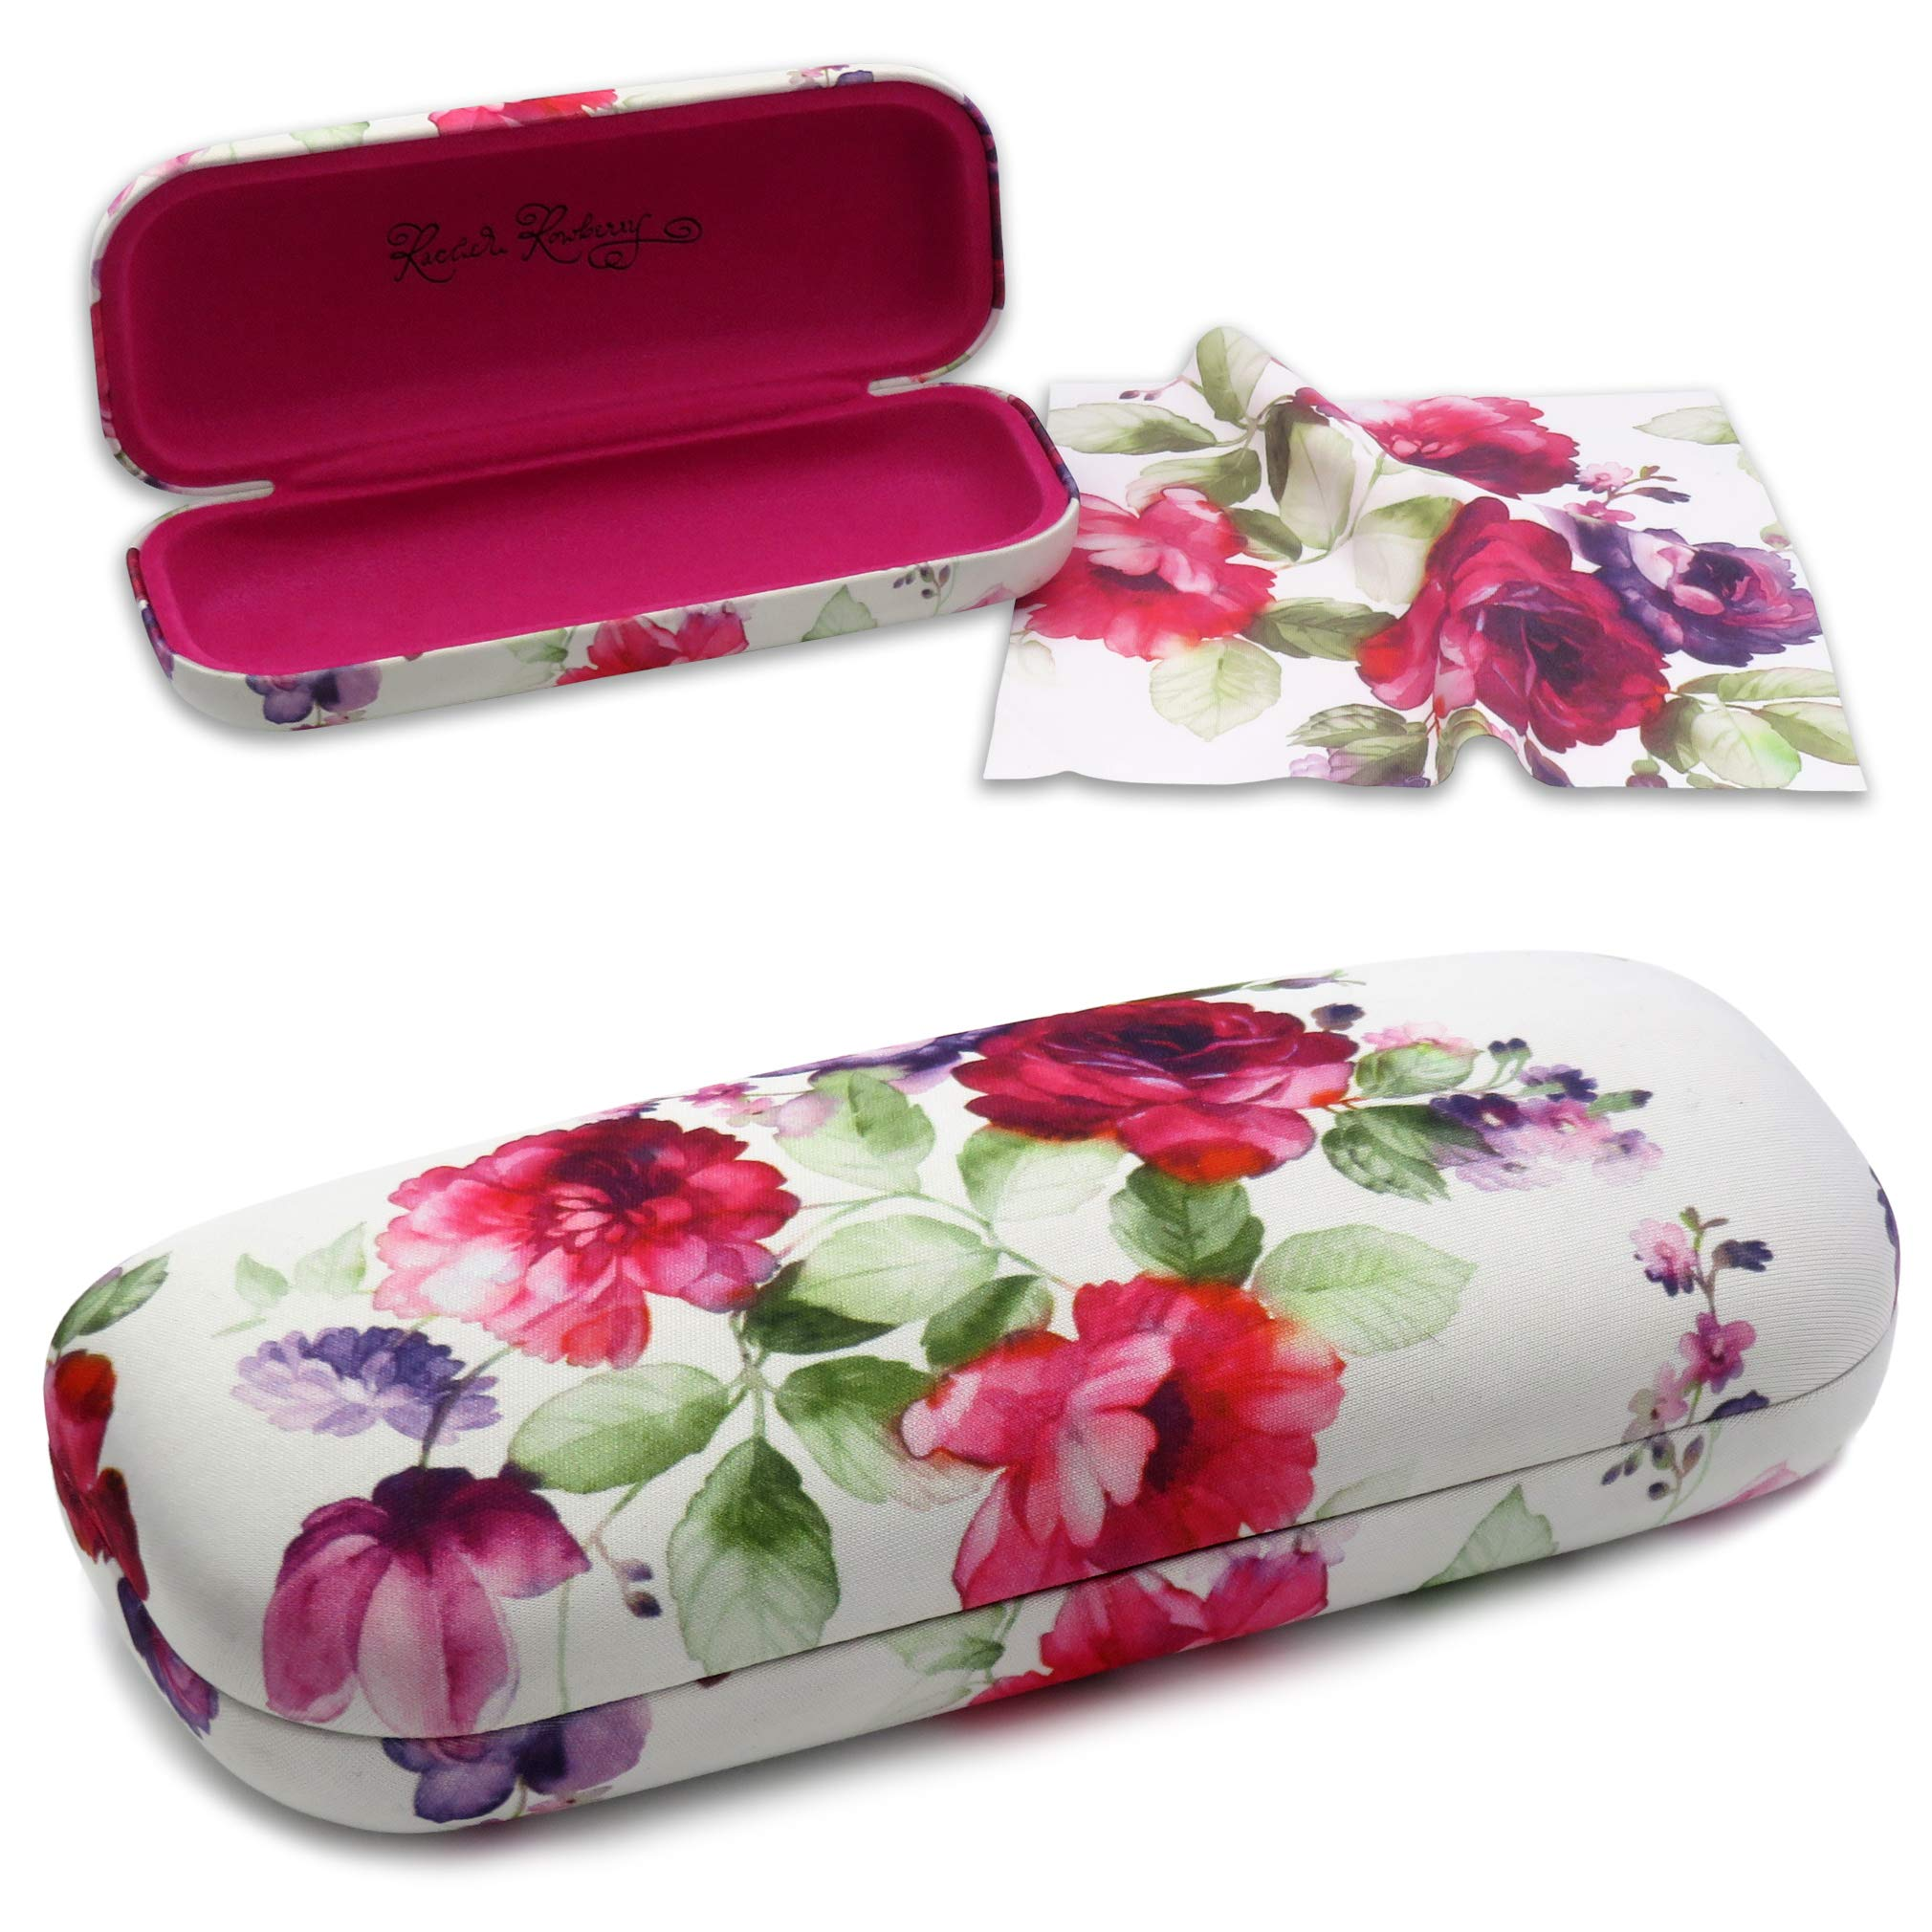 Floral Hard Shell Eyeglass Case for women Medium Sunglasses case with Cleaning Cloth by Rachel Rowberry (AS126 Cranberry Rose) by MyEyeglassCase (Image #1)